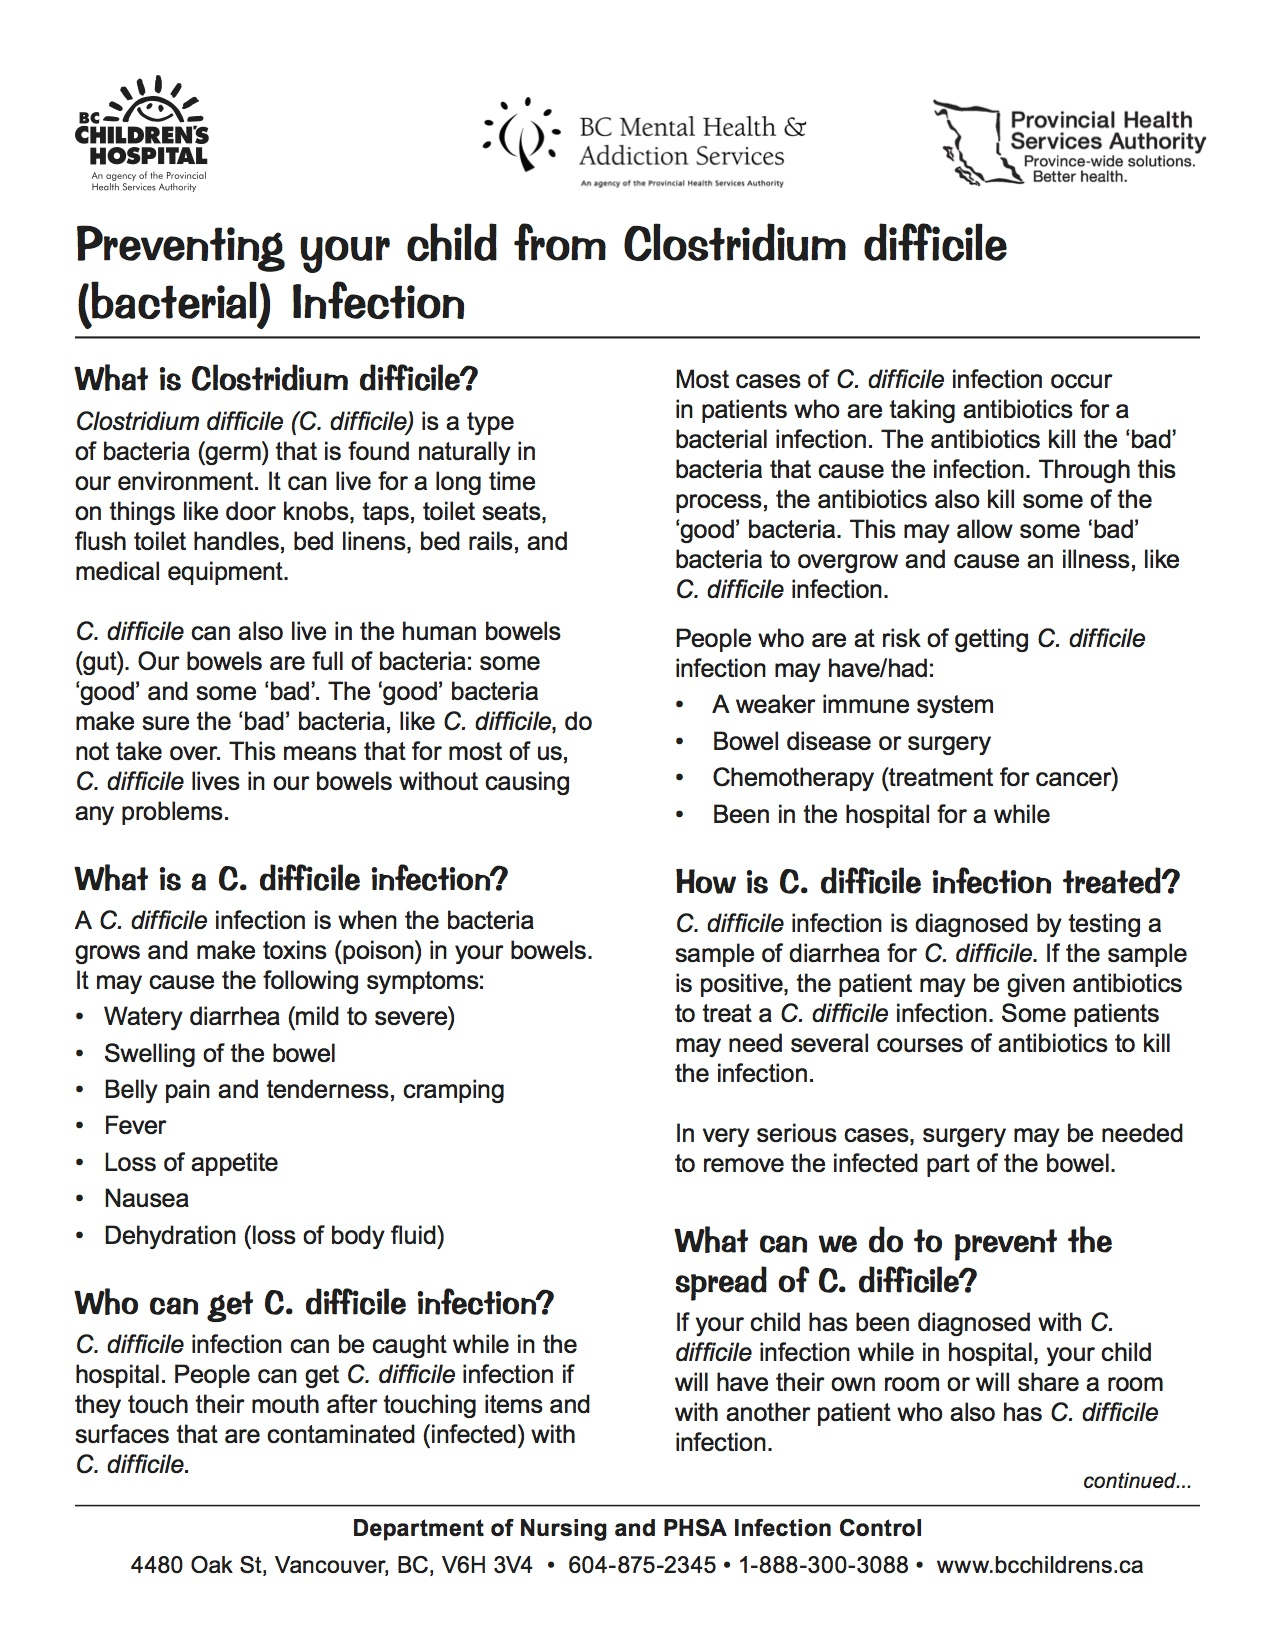 clostridium difficile essay Clostridium difficile essay example - among hospitalized patients around the world, clostridium difficile is the primary source of infectious diarrhea previously, continuously unbalanced intestinal microbiota, usually due to antimicrobials, was deemed a precondition of developing the infection.